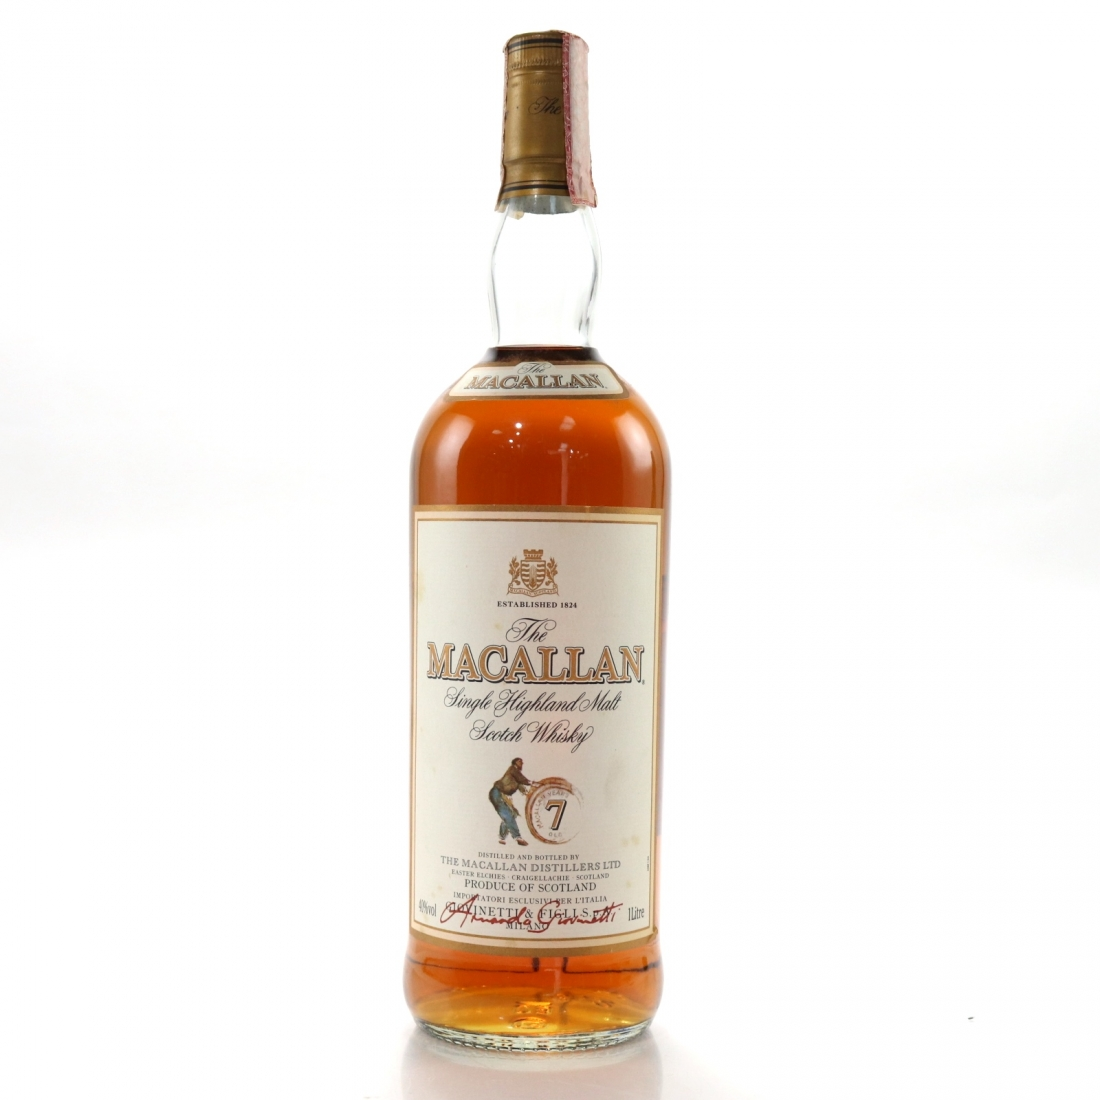 Macallan 7 Year Old Armando Giovinetti Special Selection 1 Litre